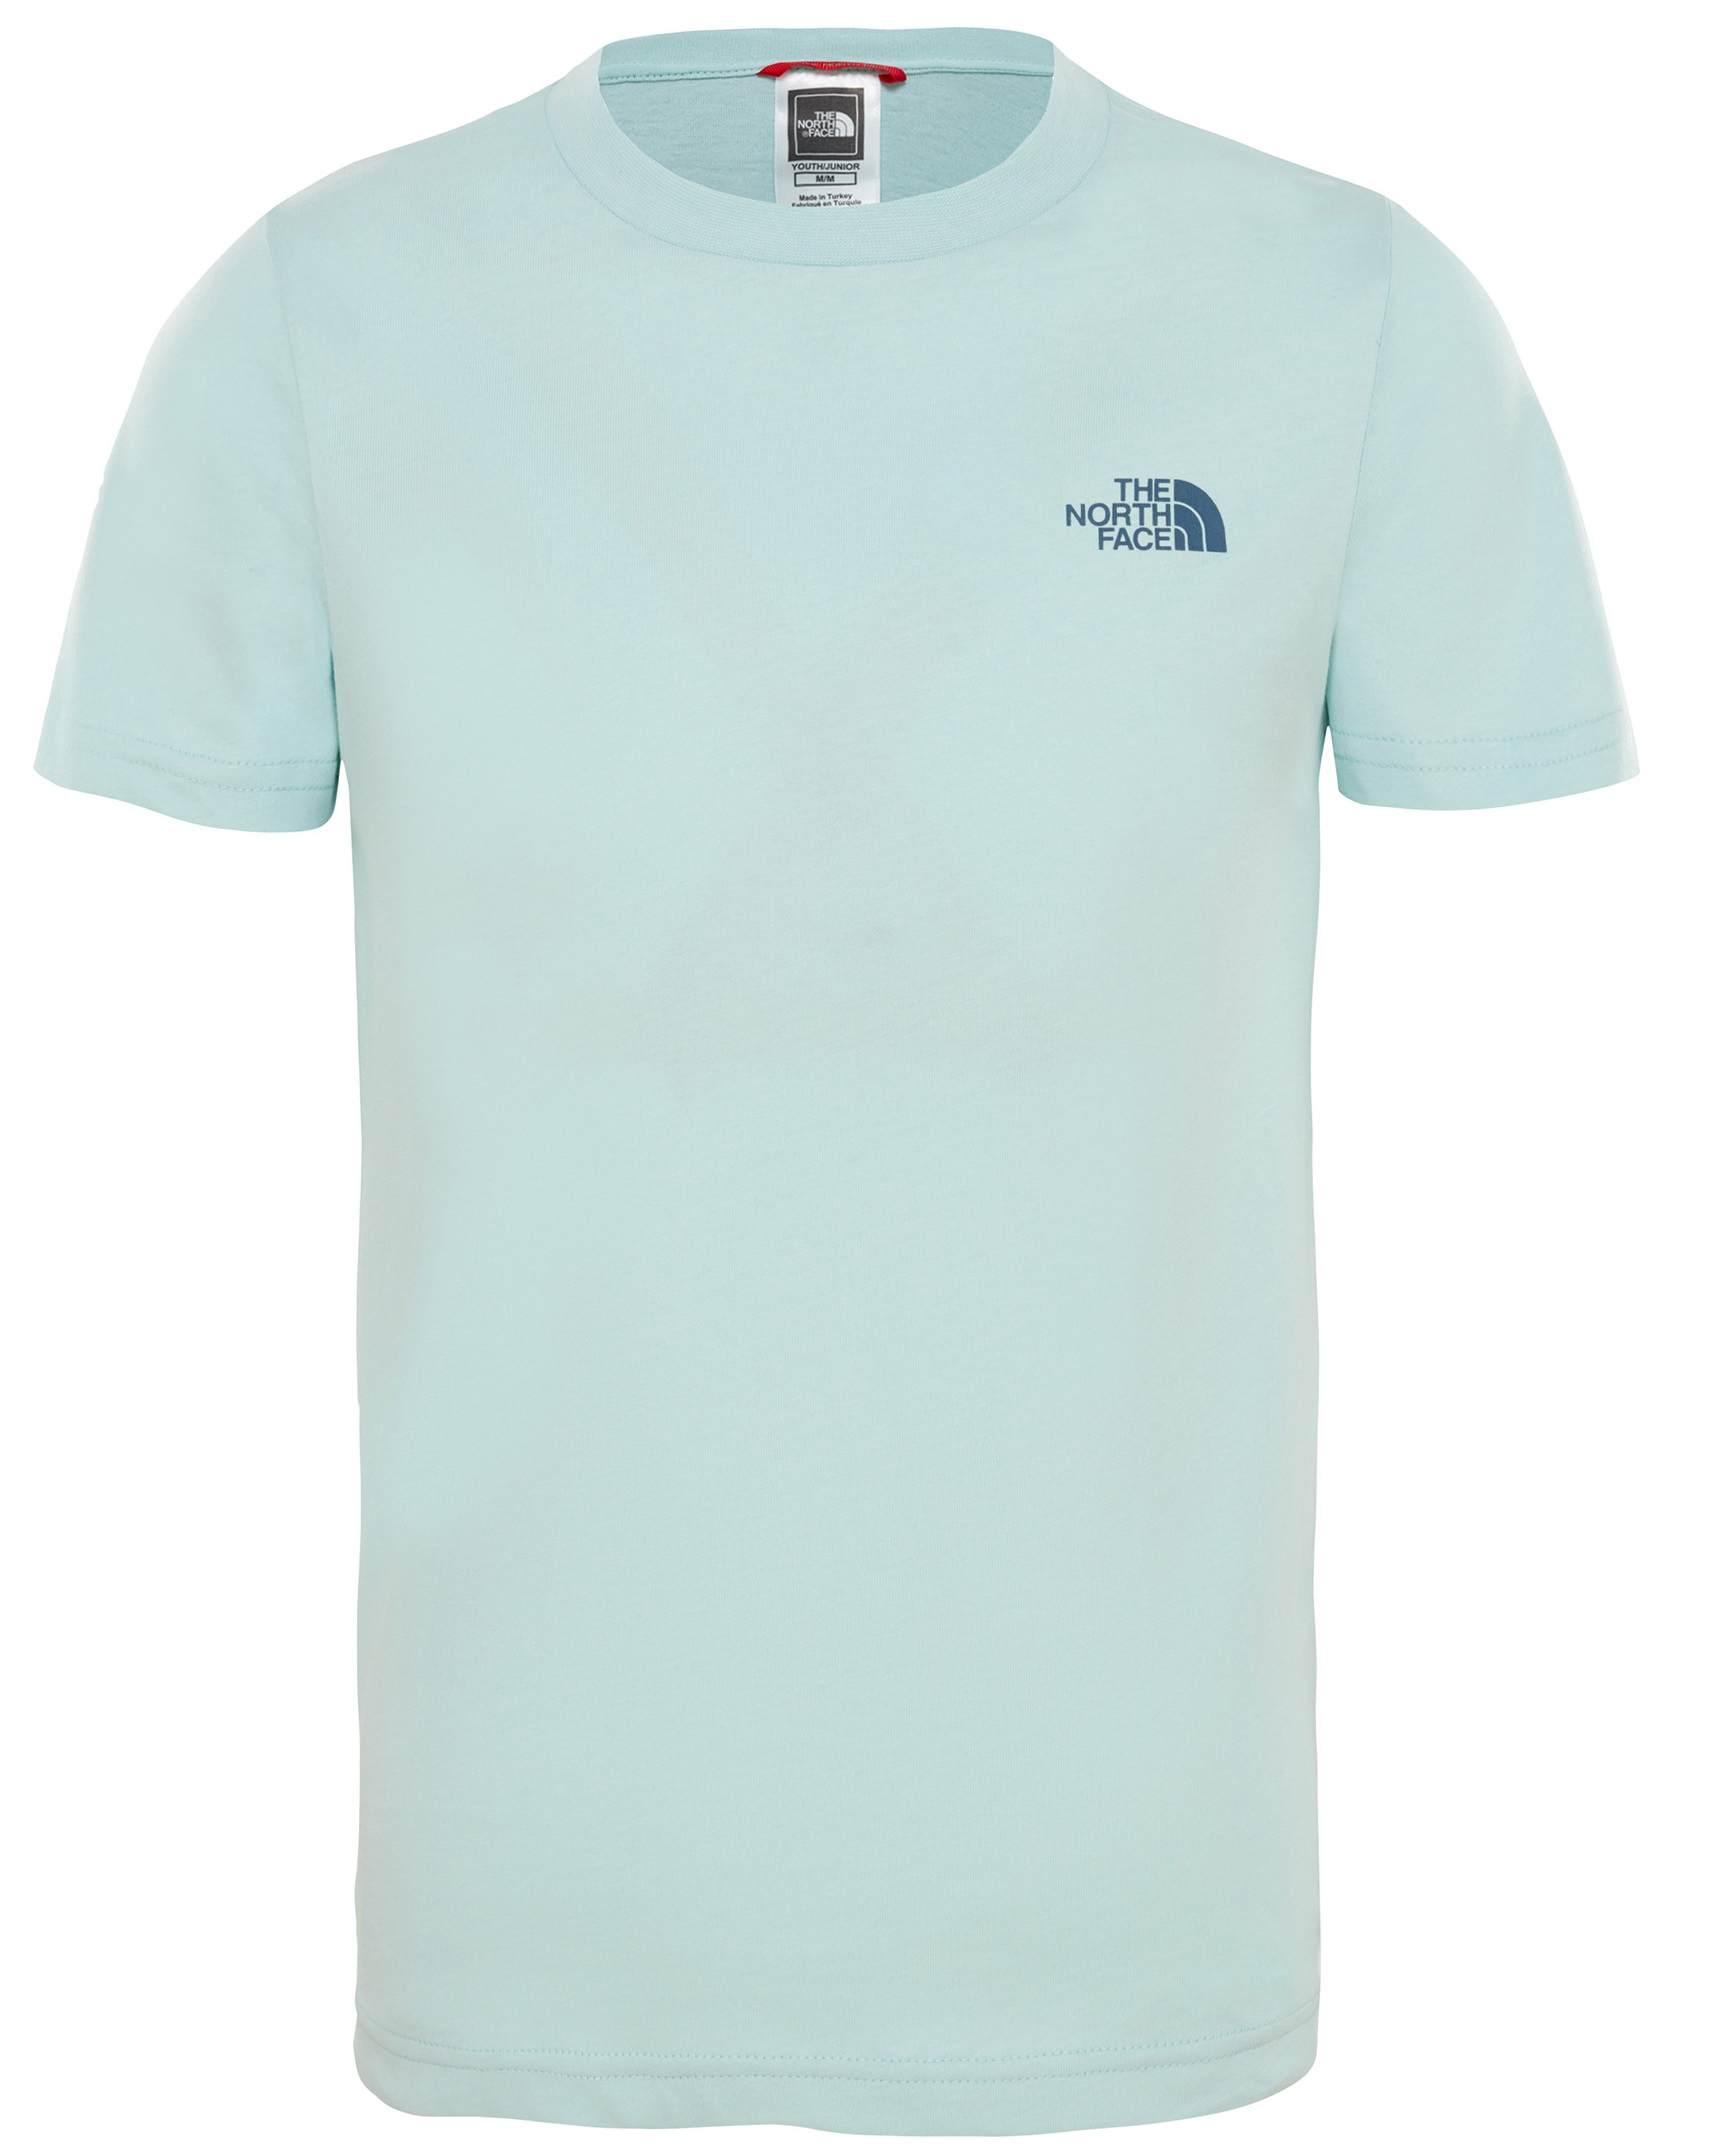 Футболка детская The North Face Ss Simple Dome Canal Blue - Фото 1 большая